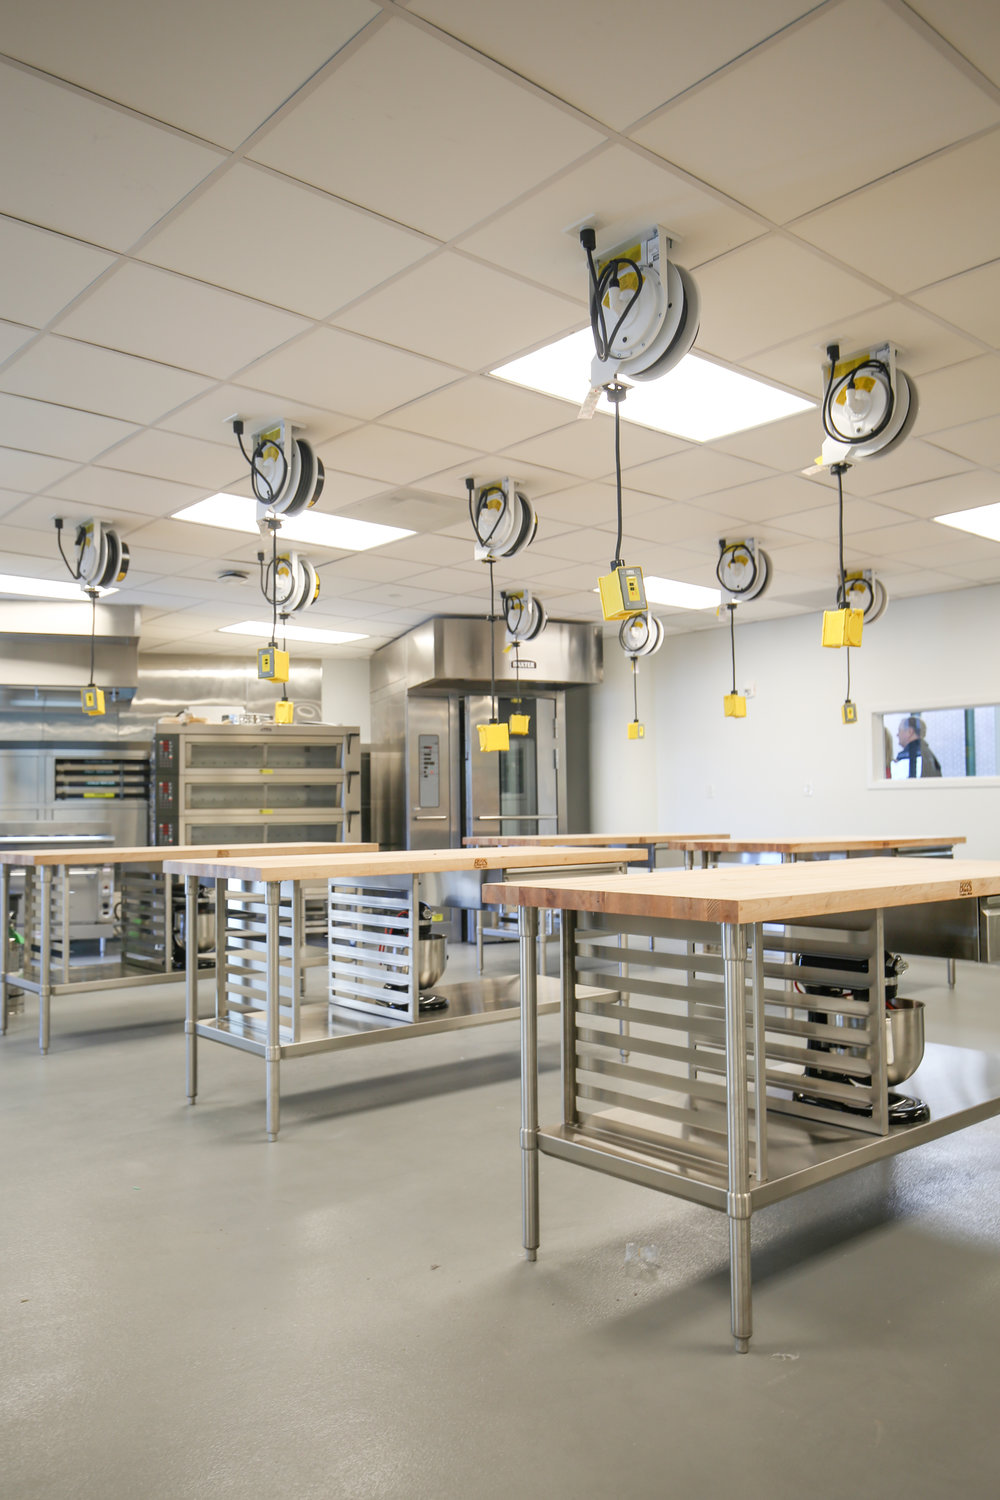 NOCHI_Interior_The Tuohy Family Baking & Pastry Lab.jpg